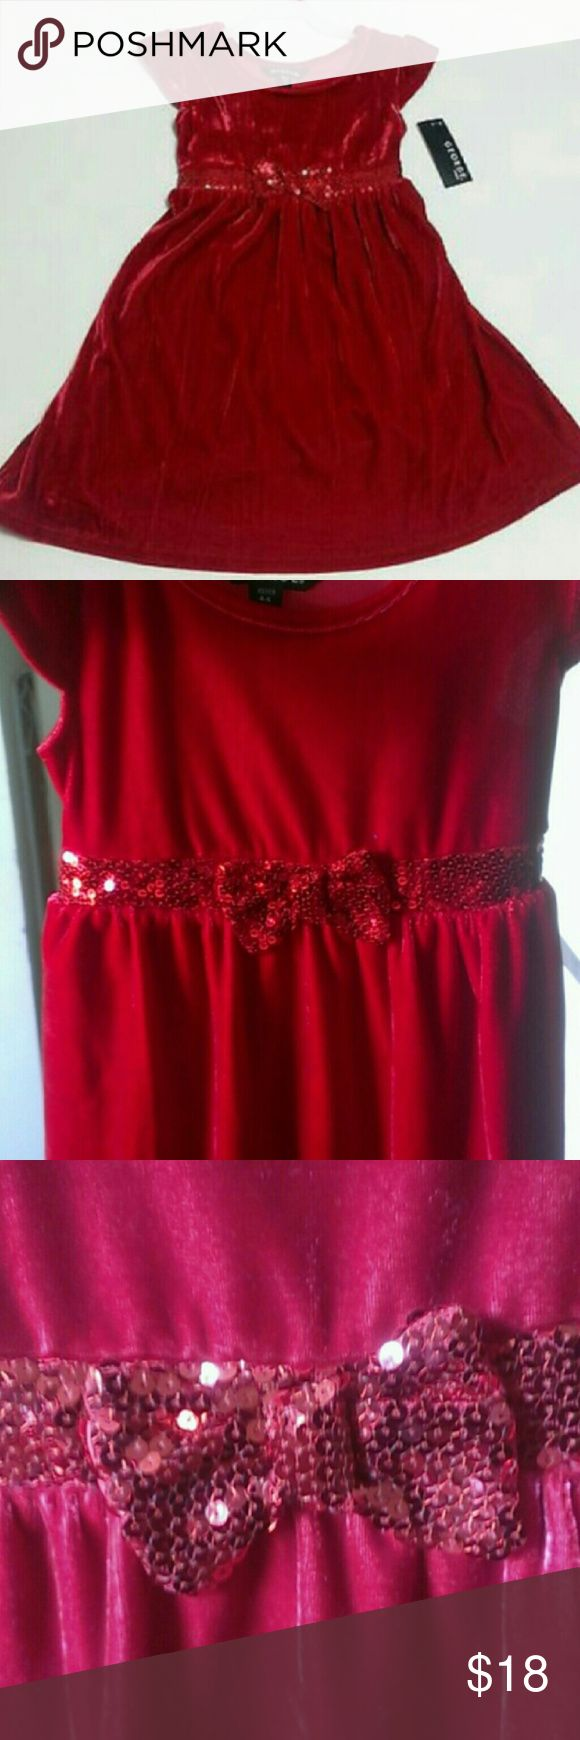 Girls Red Velour Dress With Sequin Bow This cute girls dress is a beautiful red soft velour with a sequin band around the waist and a sequin bow.  This dress would be great for any special occasion church or the daddy-daughter dance.  There are 2 different sizes available in this color and style. Extra small 4-5 Small 6-6x  These are all brand new with tags.  My home is smoke free and pet free.  I am a very fast shipper.  Be sure to check out the other items in my closet to bundle for your…